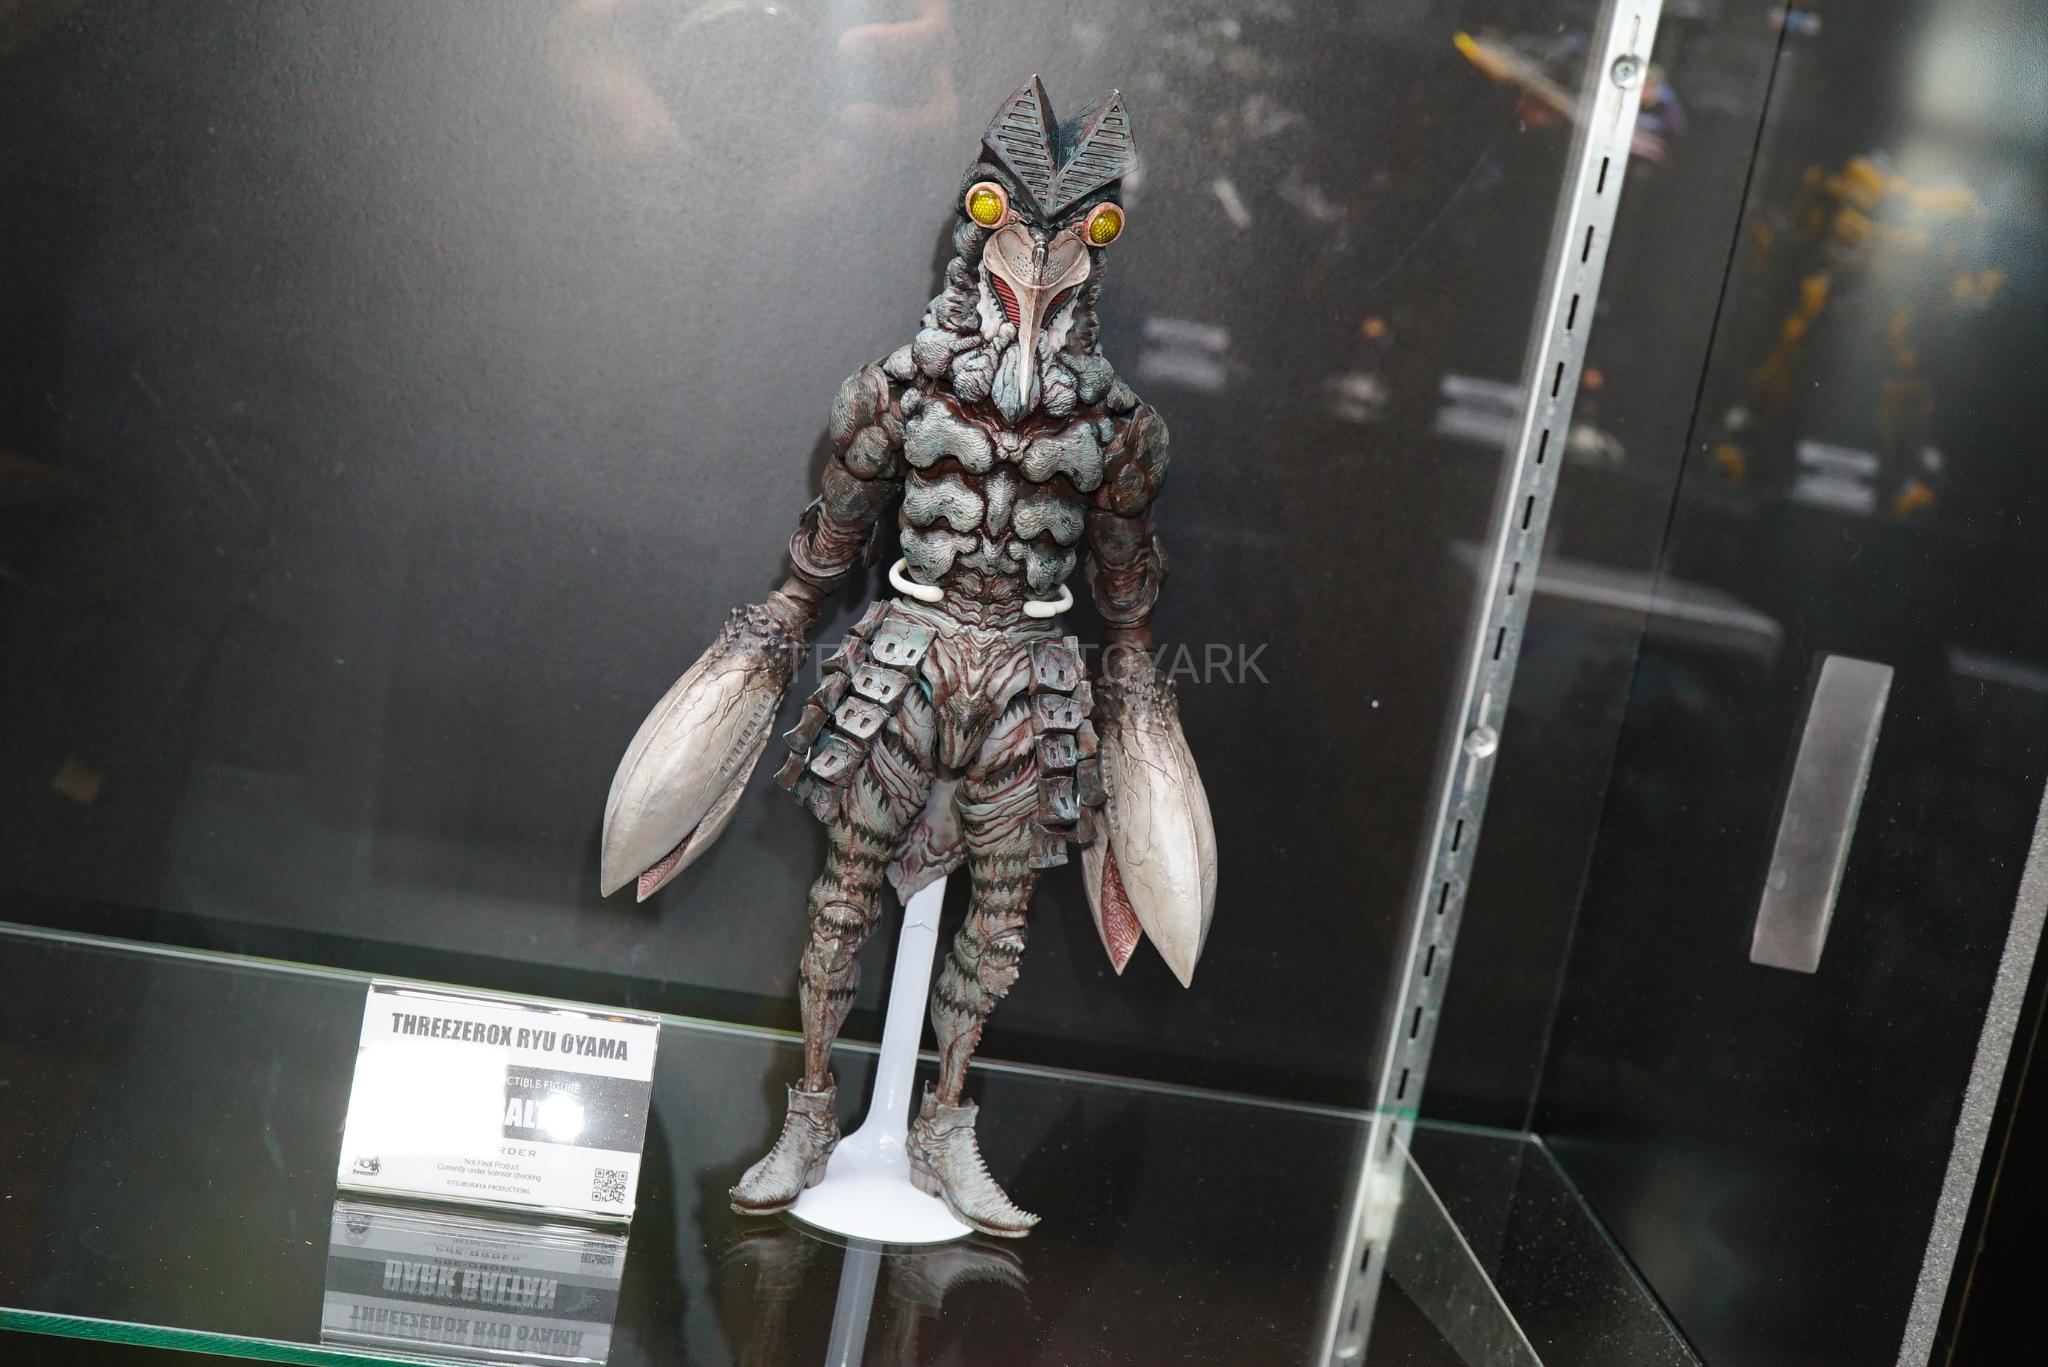 Toy-Fair-2020-ThreeZero-034.jpg